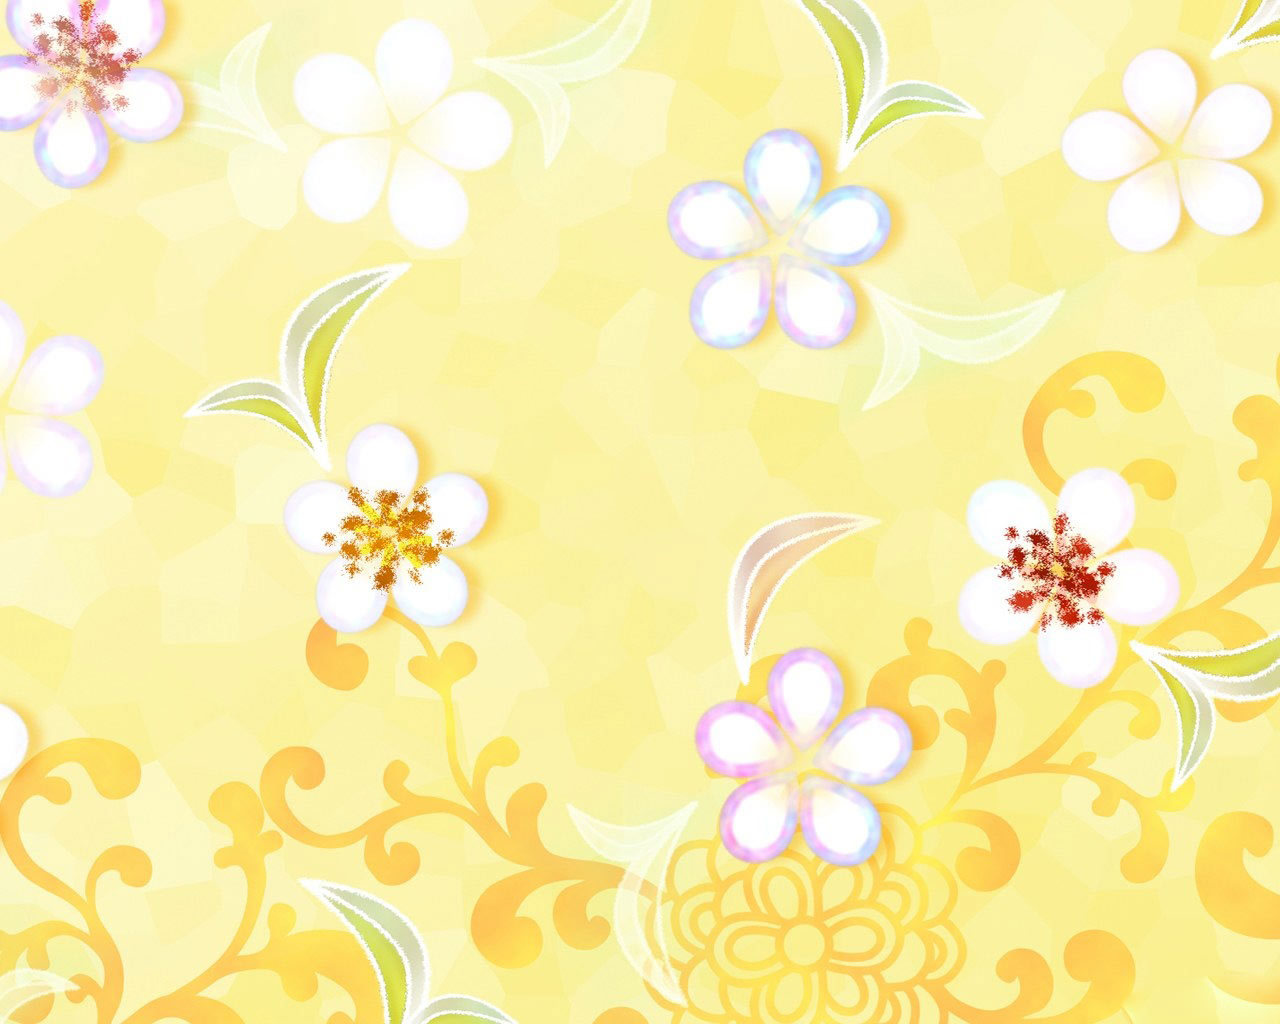 Spring flowers yellow background hd Wallpaper and make this wallpaper 1280x1024